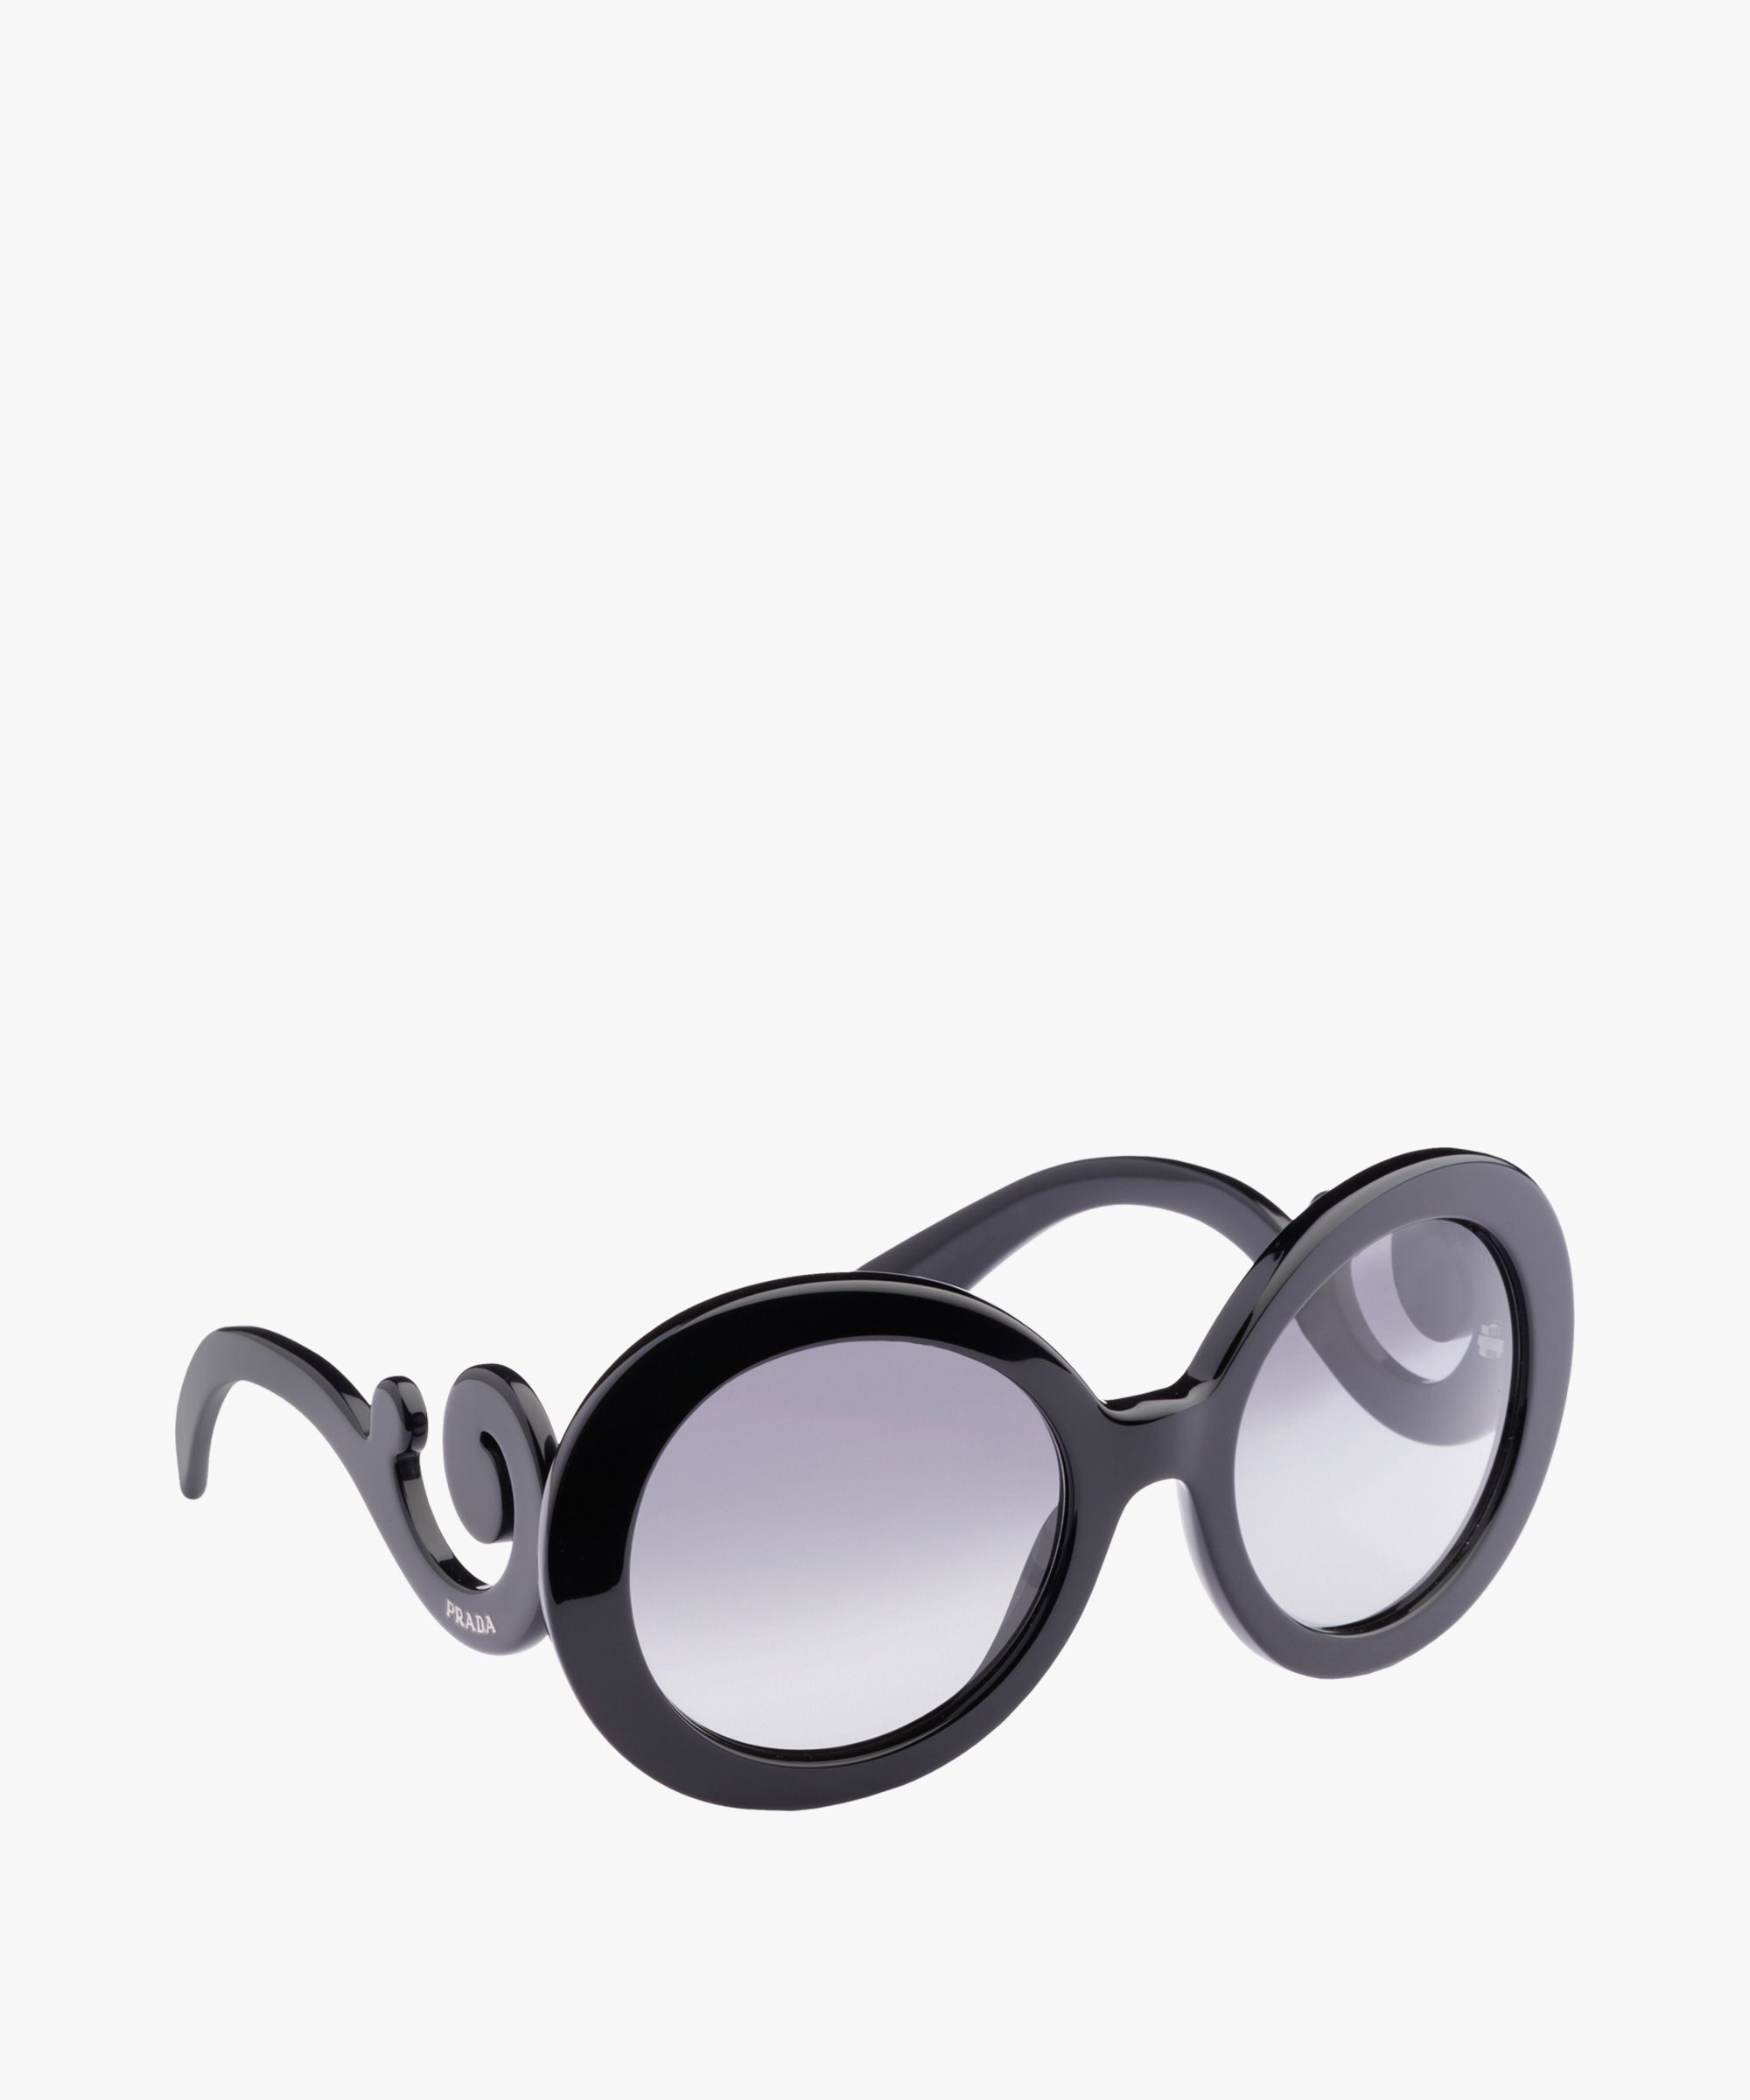 cb4c27d19120c prada. Find this Pin and more on Eye glasses by Enza Simone.